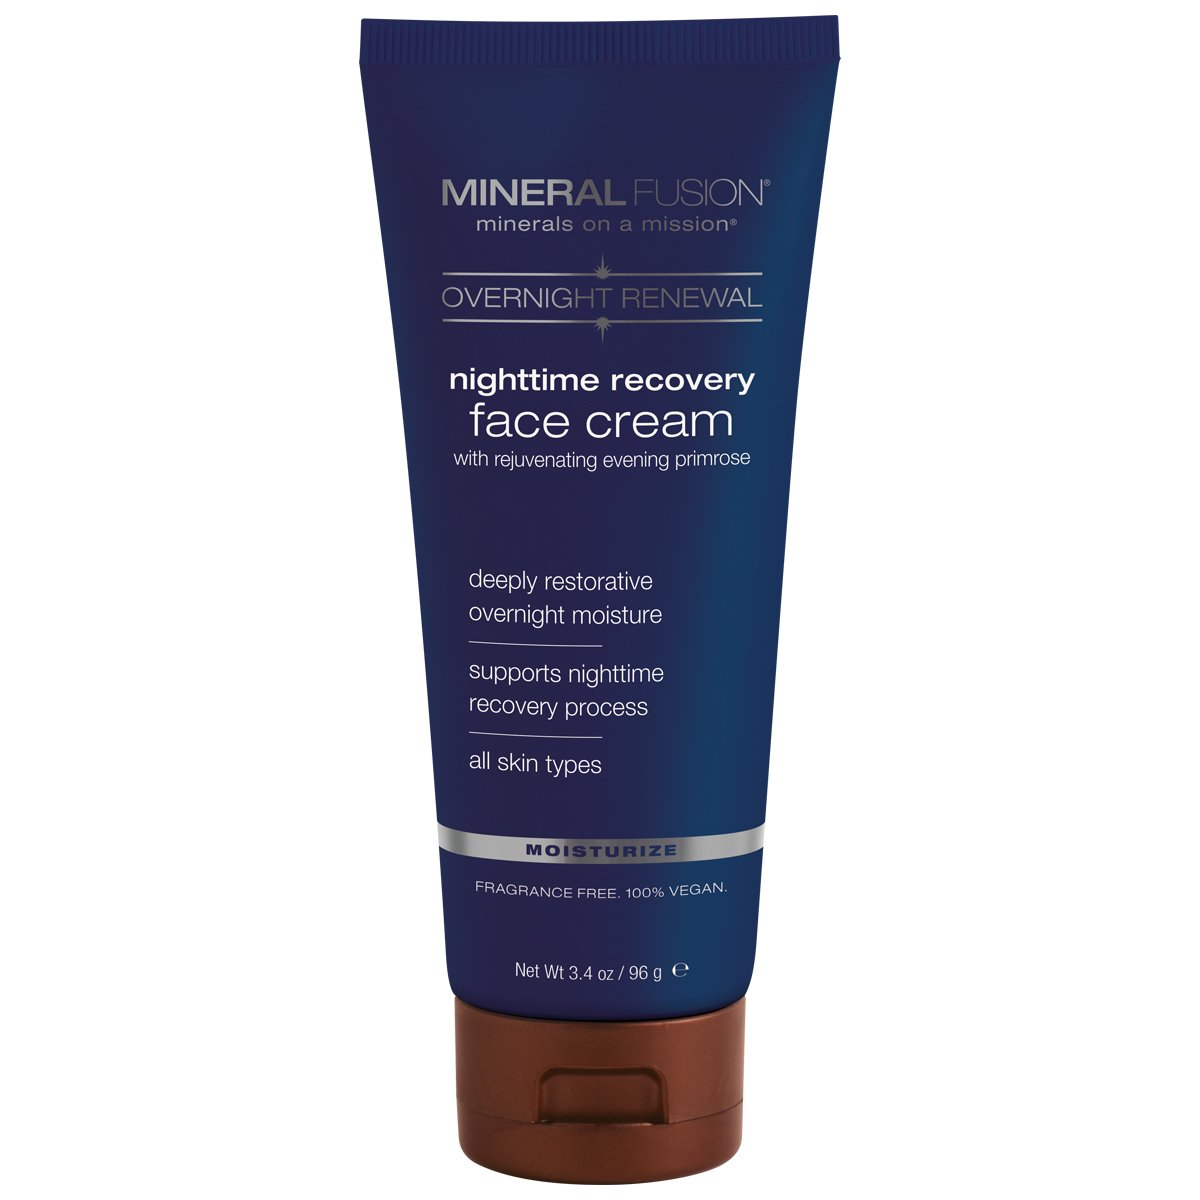 Mineral Fusion Overnight Renewal Night time Recovery Face Cream, 3.4 Ounce